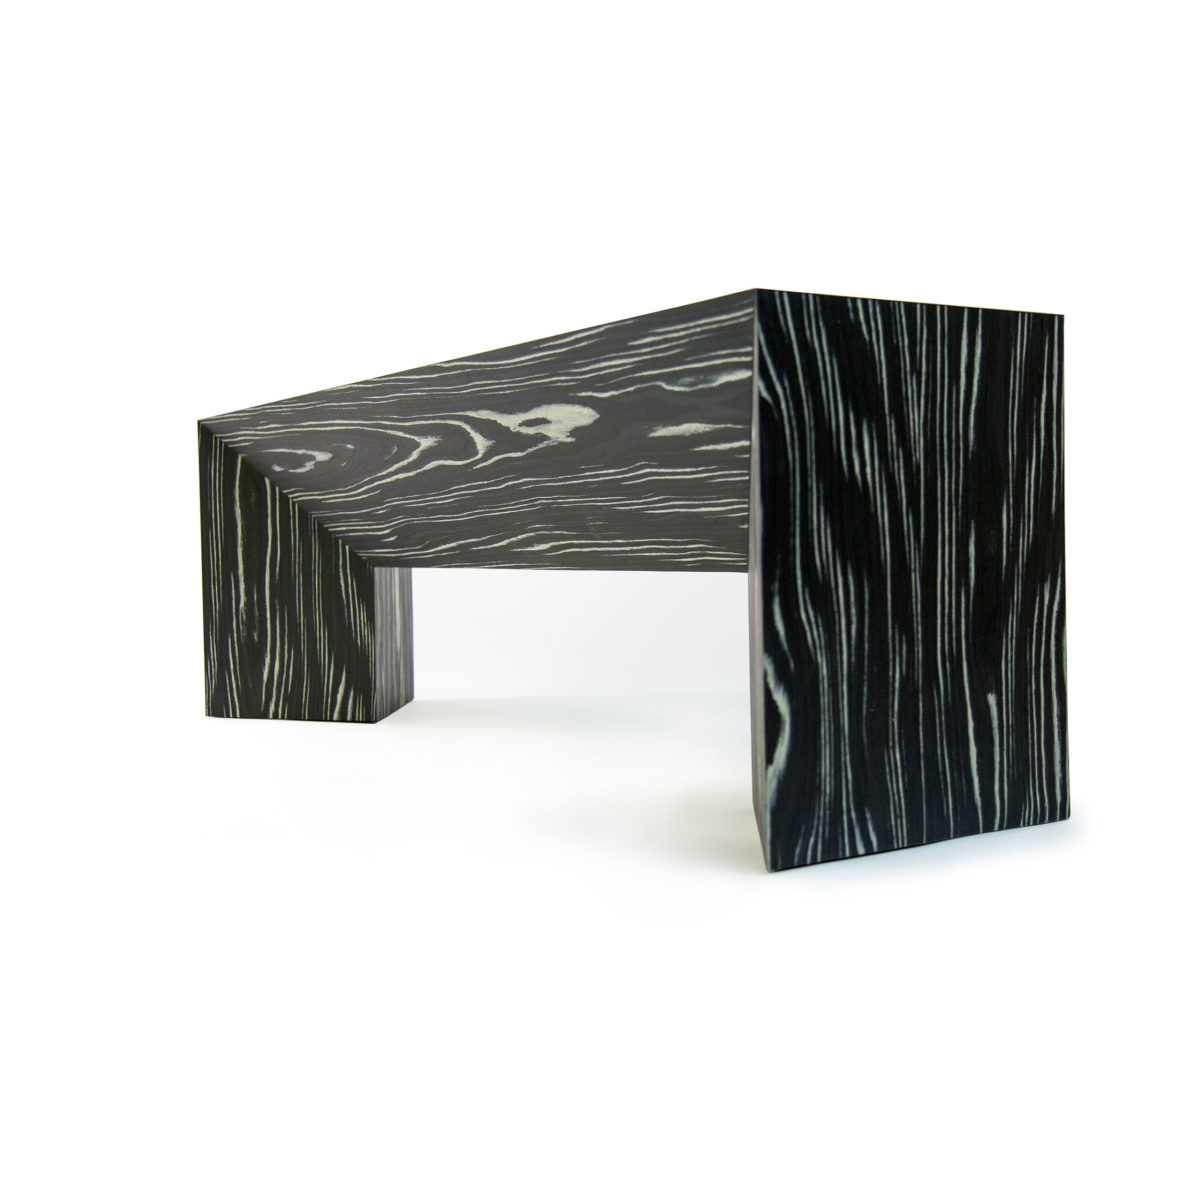 Fold Bench, Photo: fferrone design